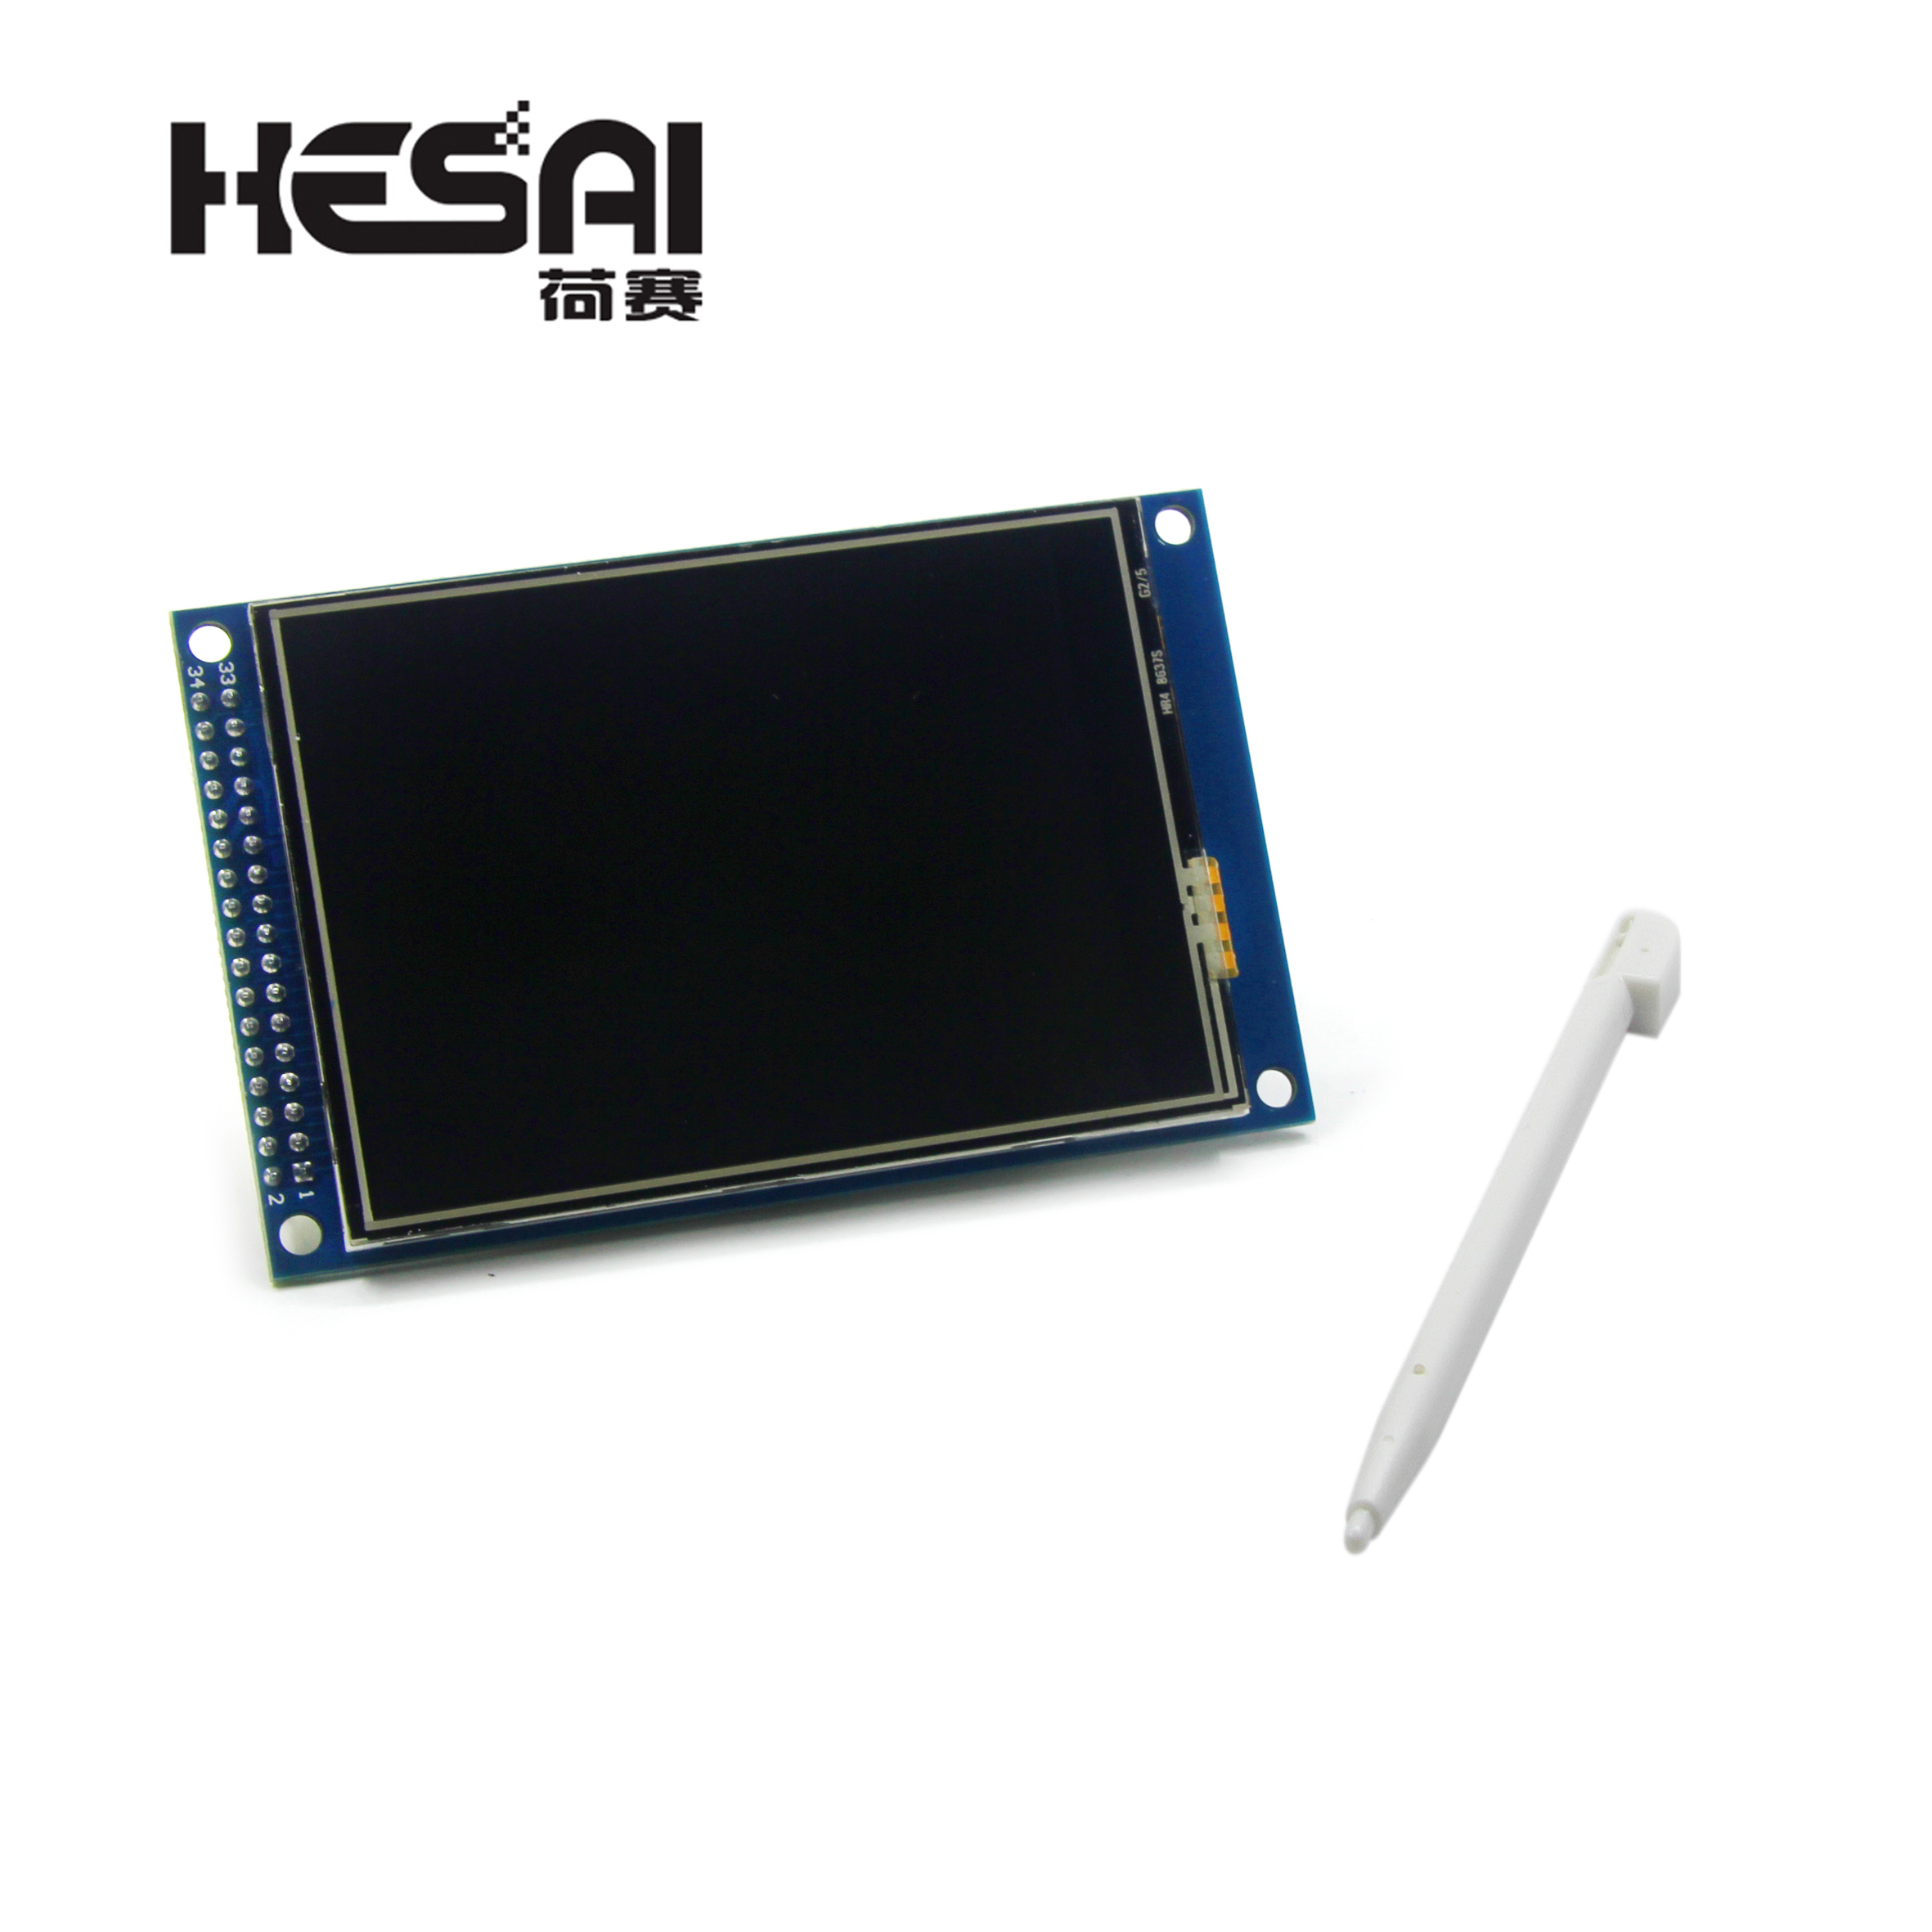 LCD <font><b>3.2</b></font> inch <font><b>TFT</b></font> Touch Screen Module Display Ultra HD ILI9341 for STM32 240x320 240*320 for <font><b>arduino</b></font> Diy Kit image